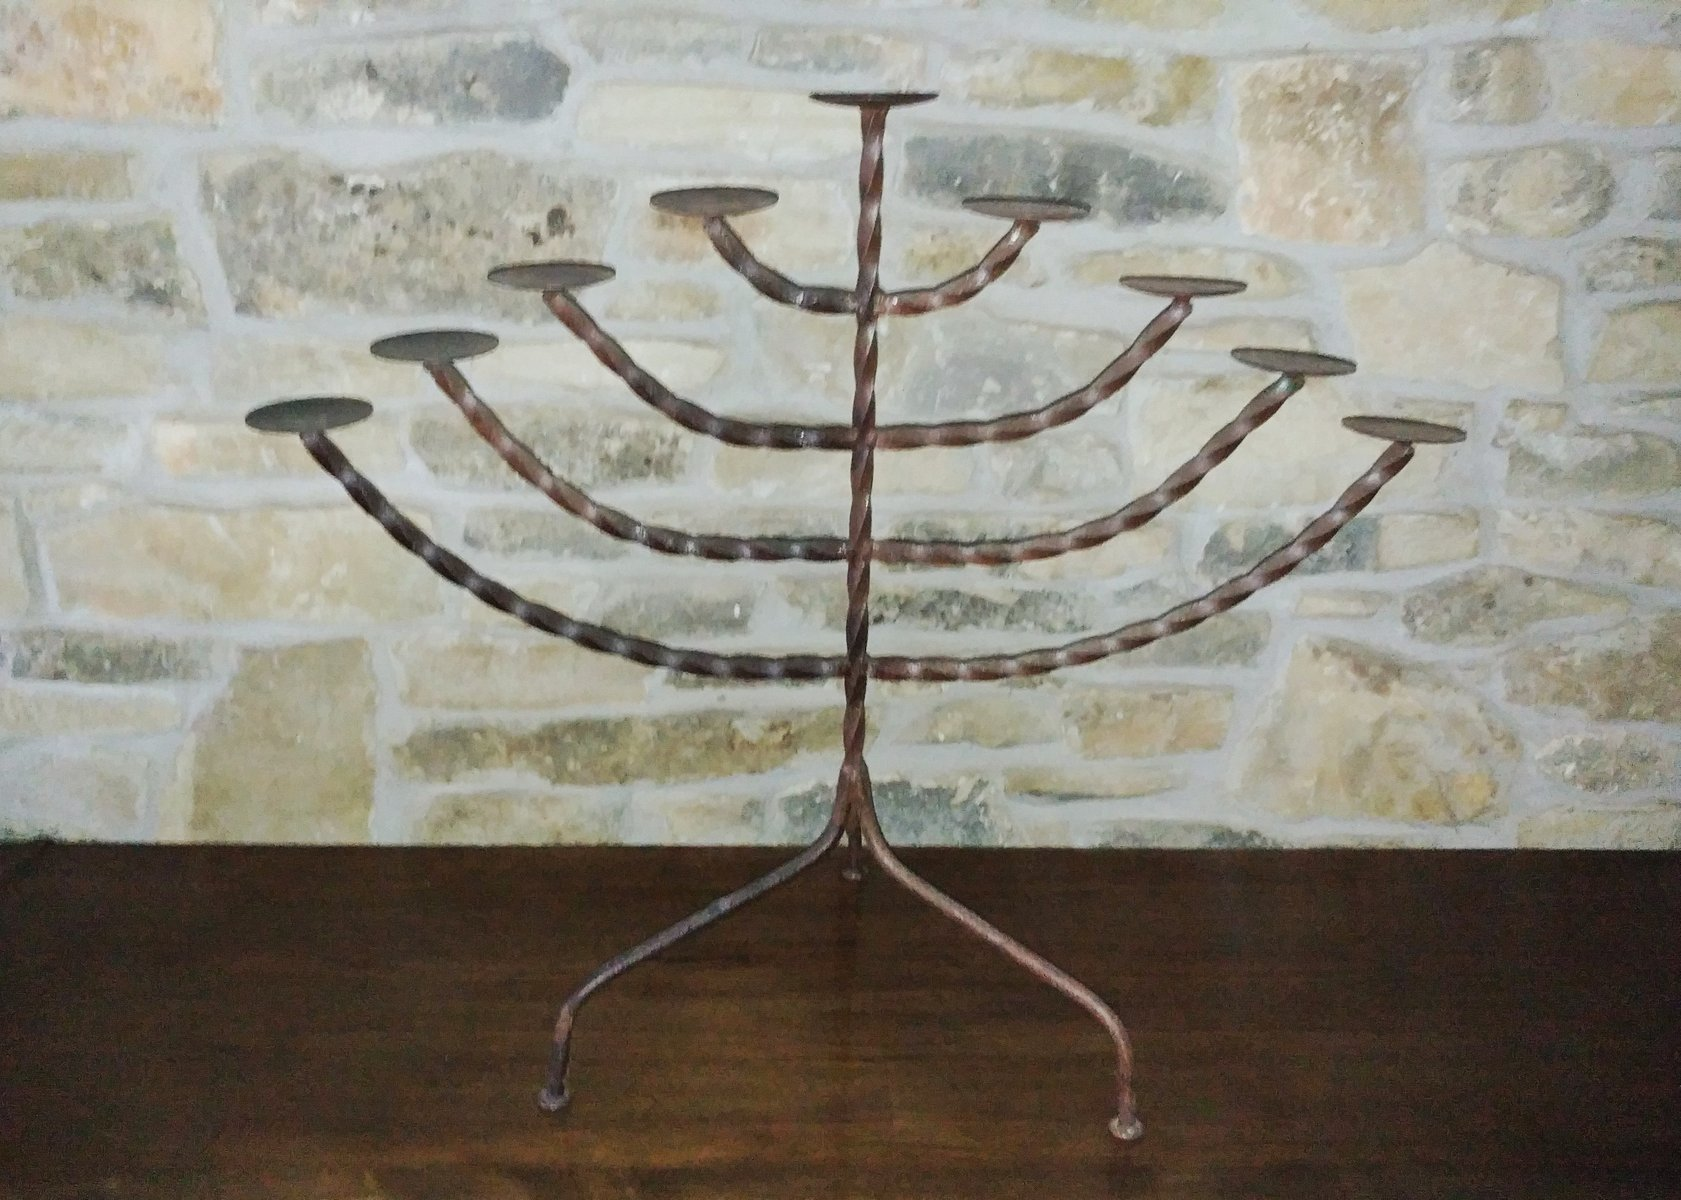 Antique wrought iron table - Antique Wrought Iron Table Top Candelabra